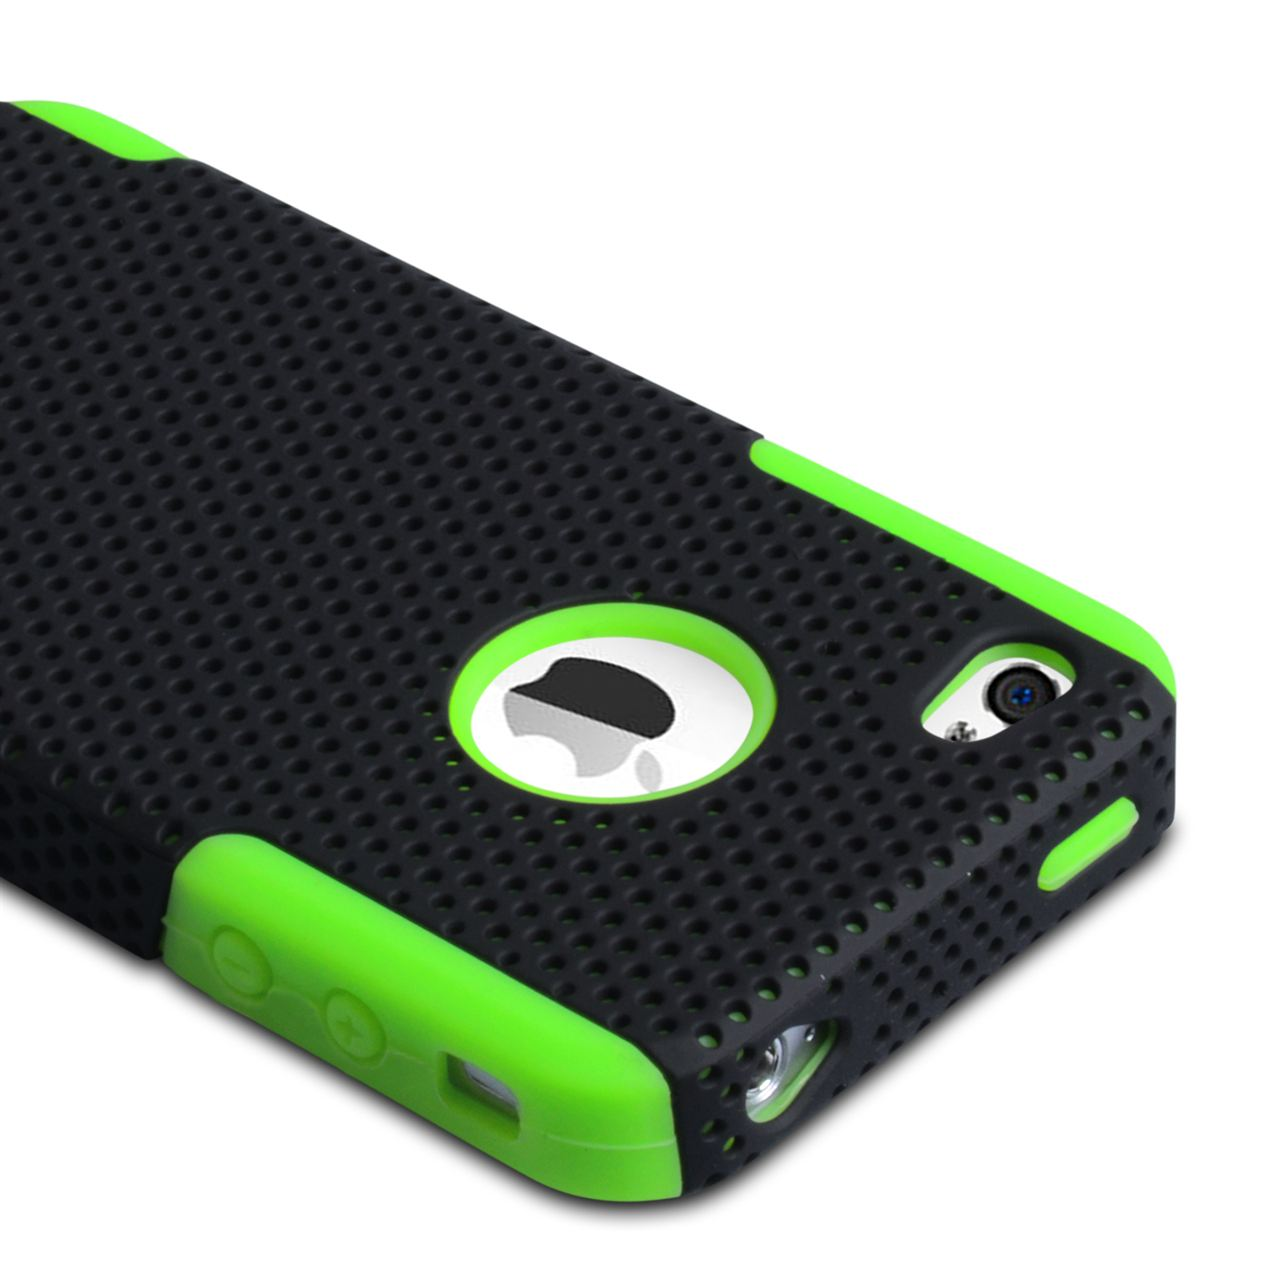 YouSave Accessories iPhone 4 / 4S Mesh Combo Case - Green